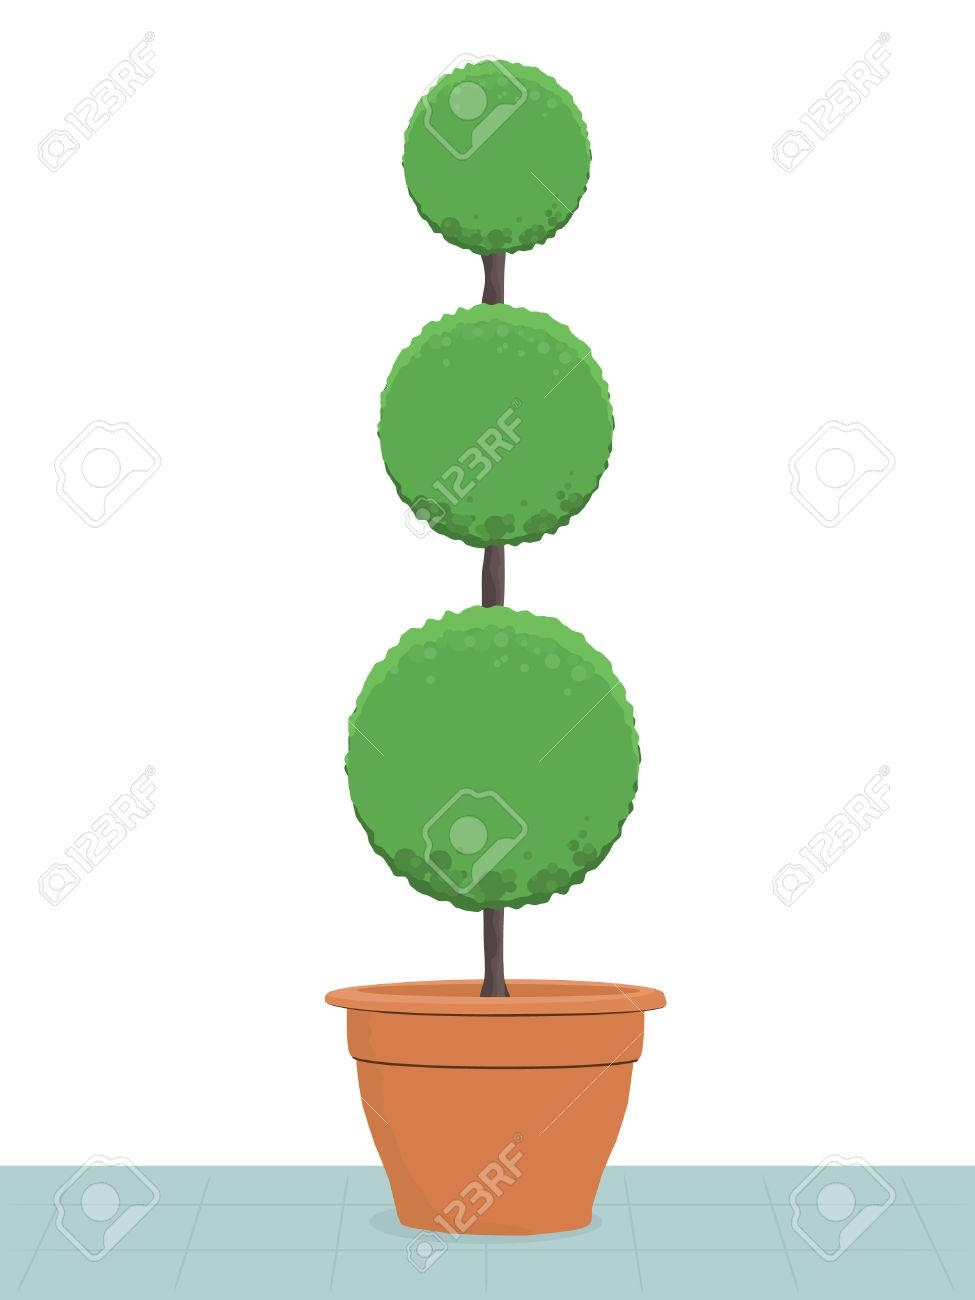 417 Topiary Stock Vector Illustration And Royalty Free Topiary Clipart In Topiary Wall Art (Image 2 of 20)